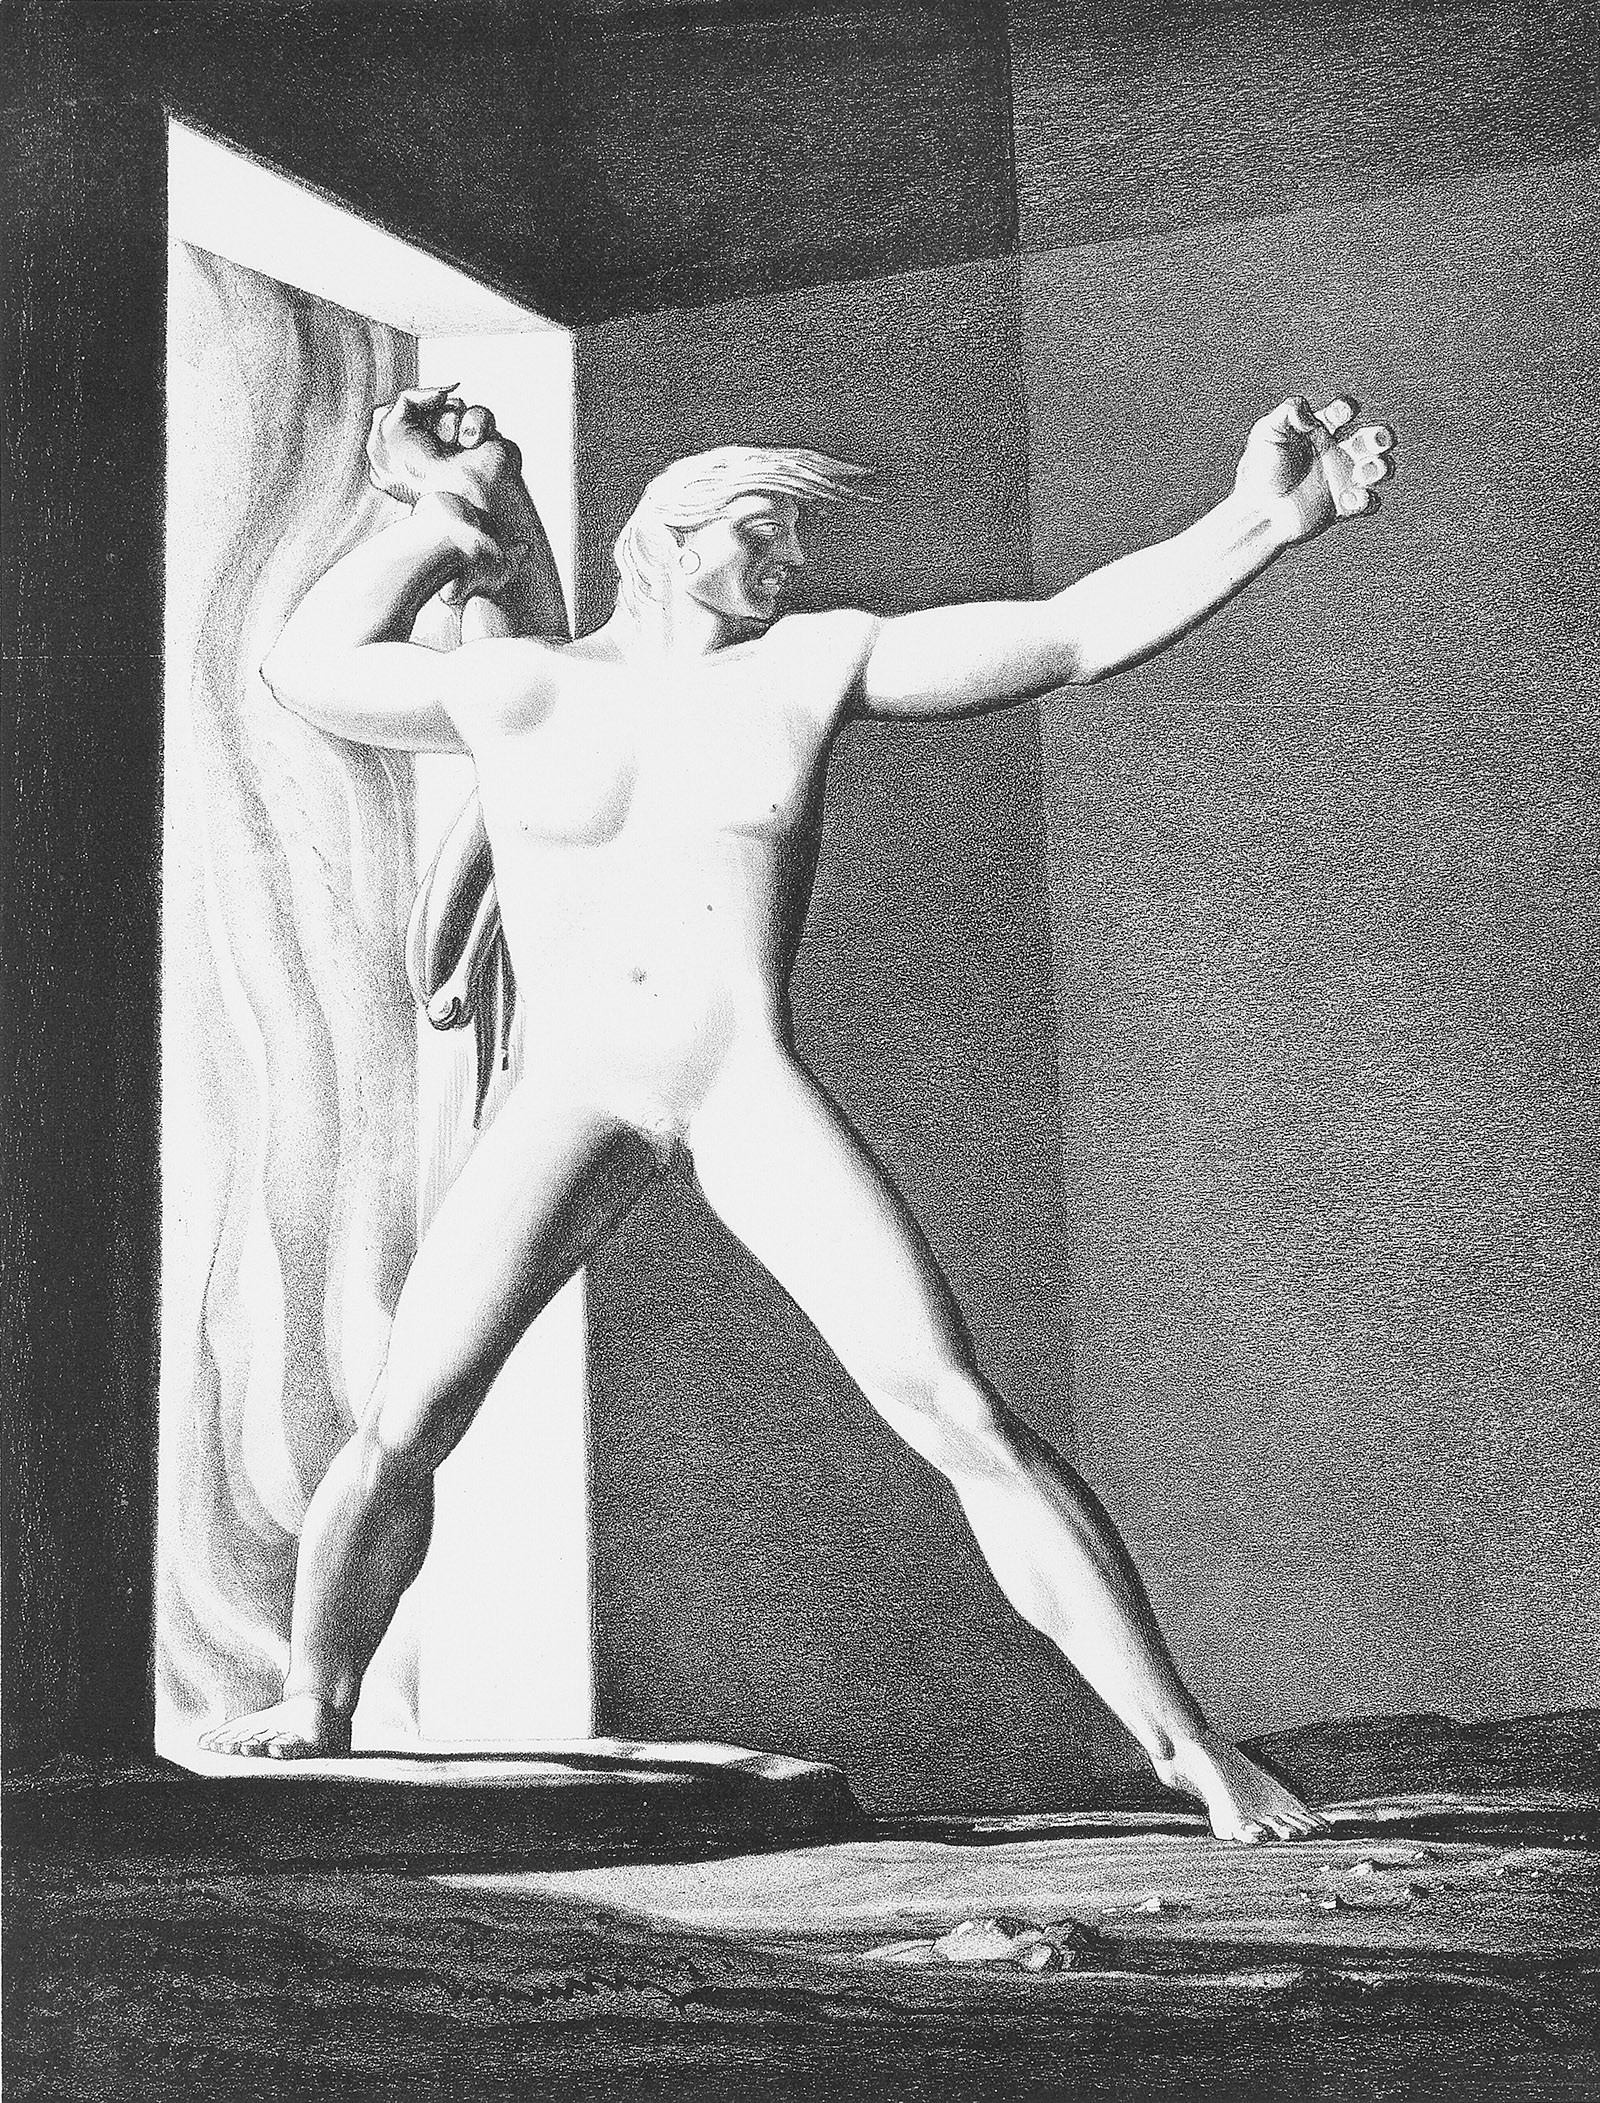 Beowulf; lithograph by Rockwell Kent